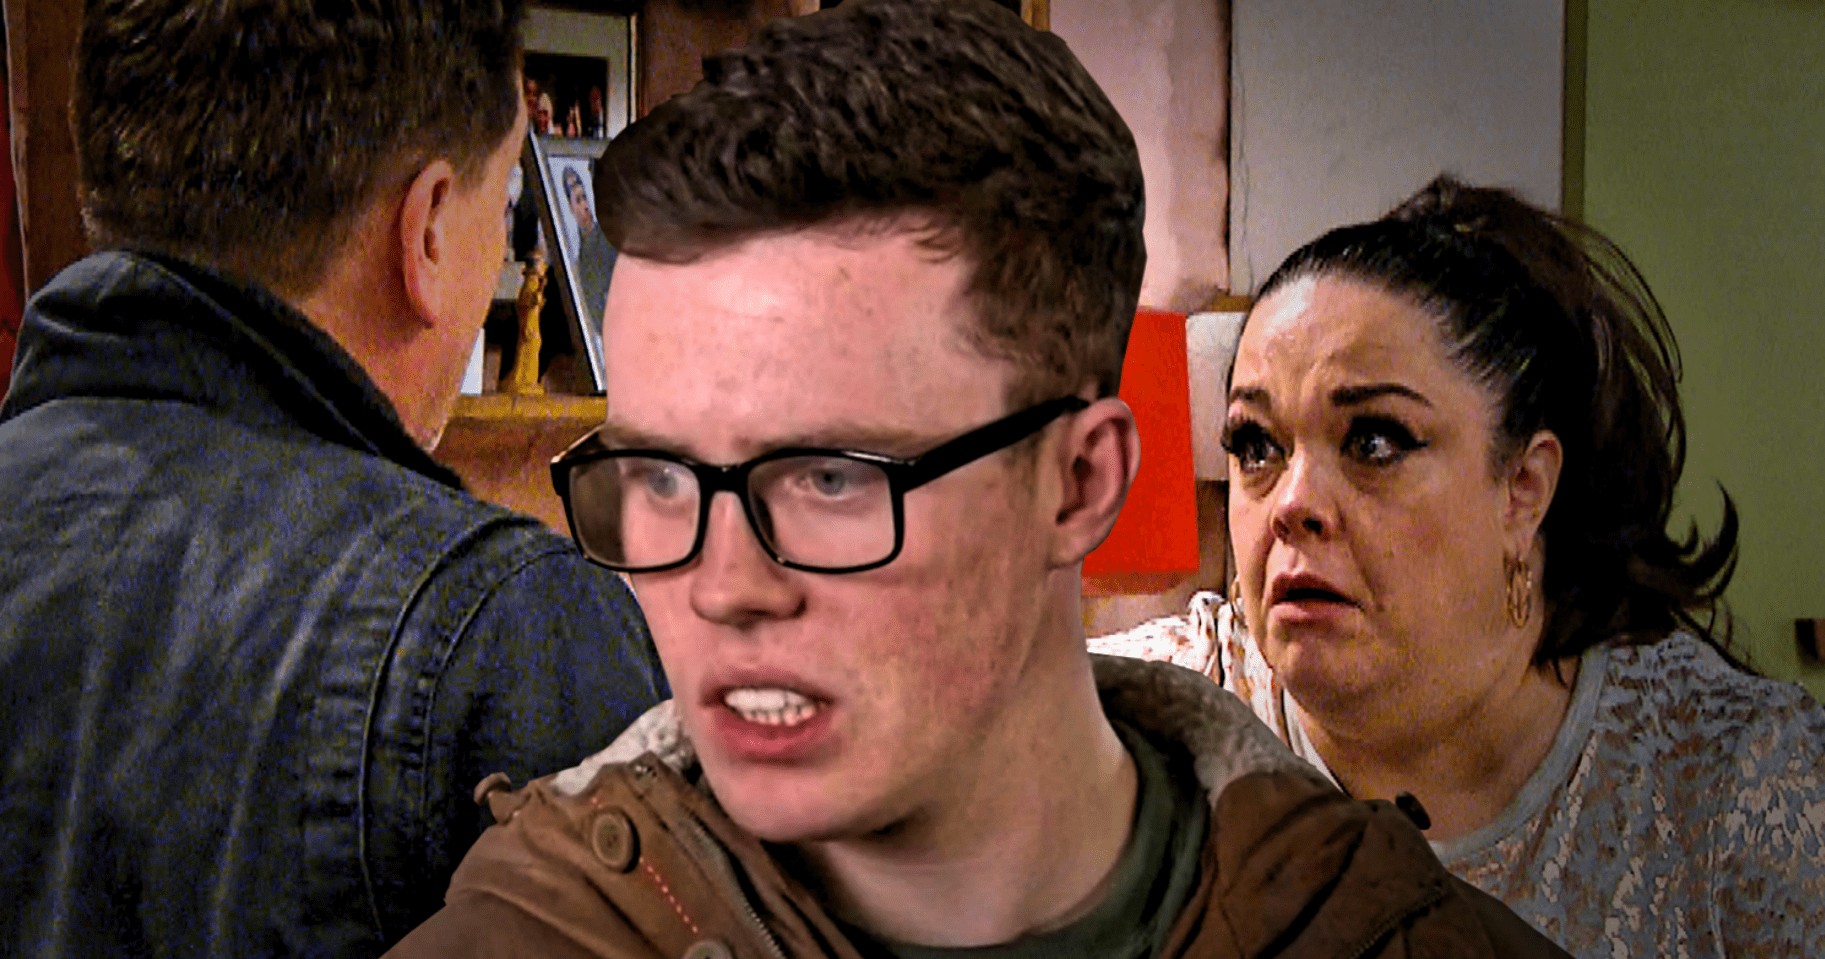 Emmerdale spoilers: Shock exit for Vinny Ashdale as he discovers the truth about dad Paul?